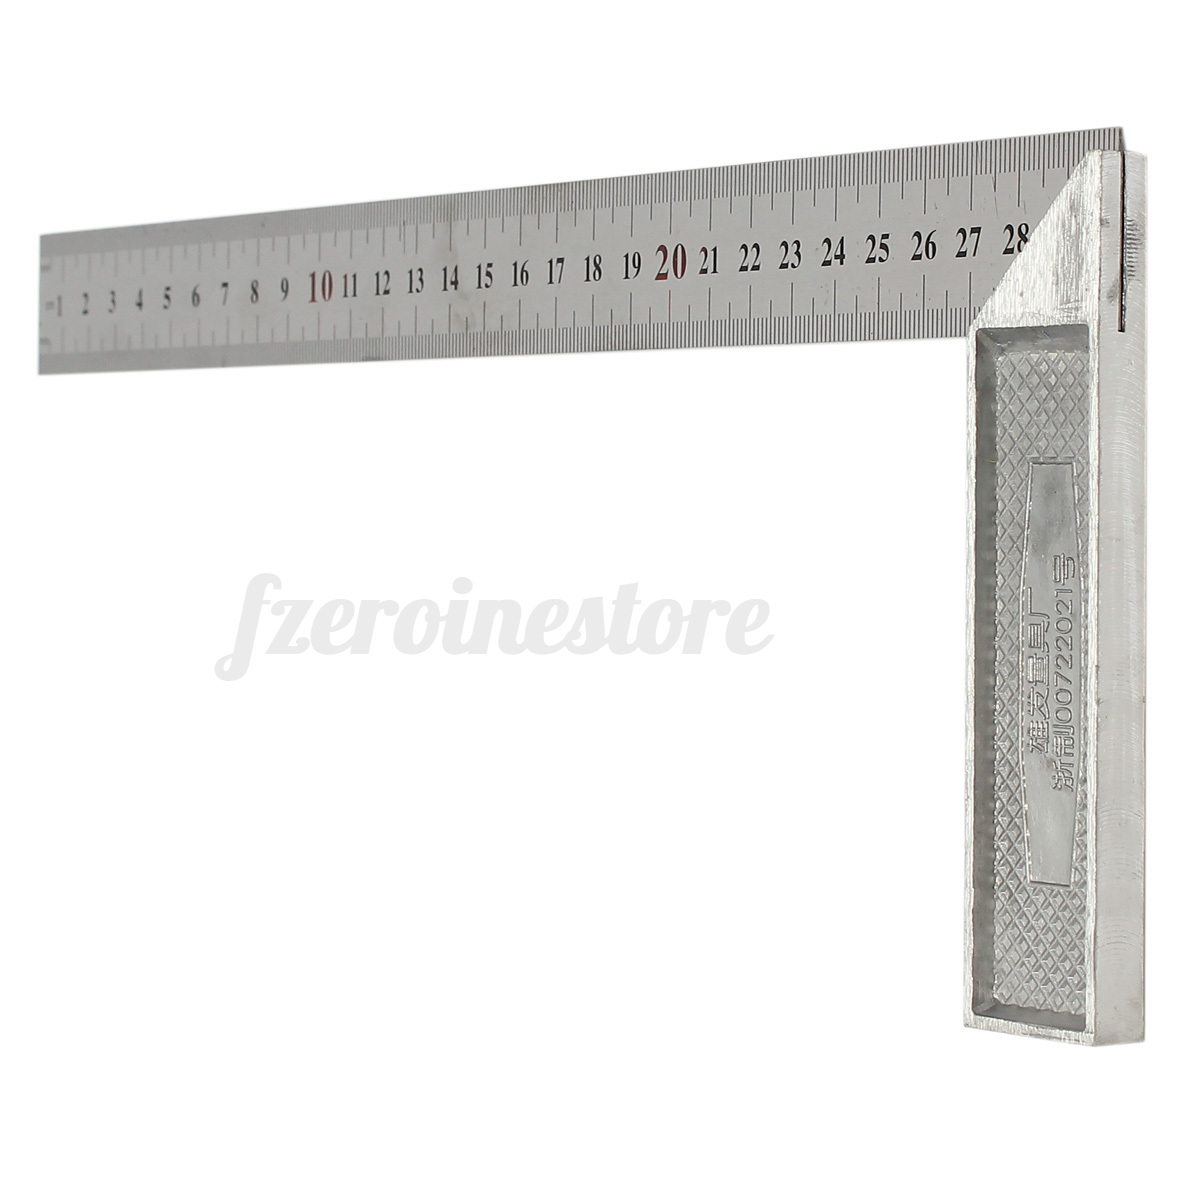 Right Angle Tool : Cm  stainless steel right angle measuring ruler